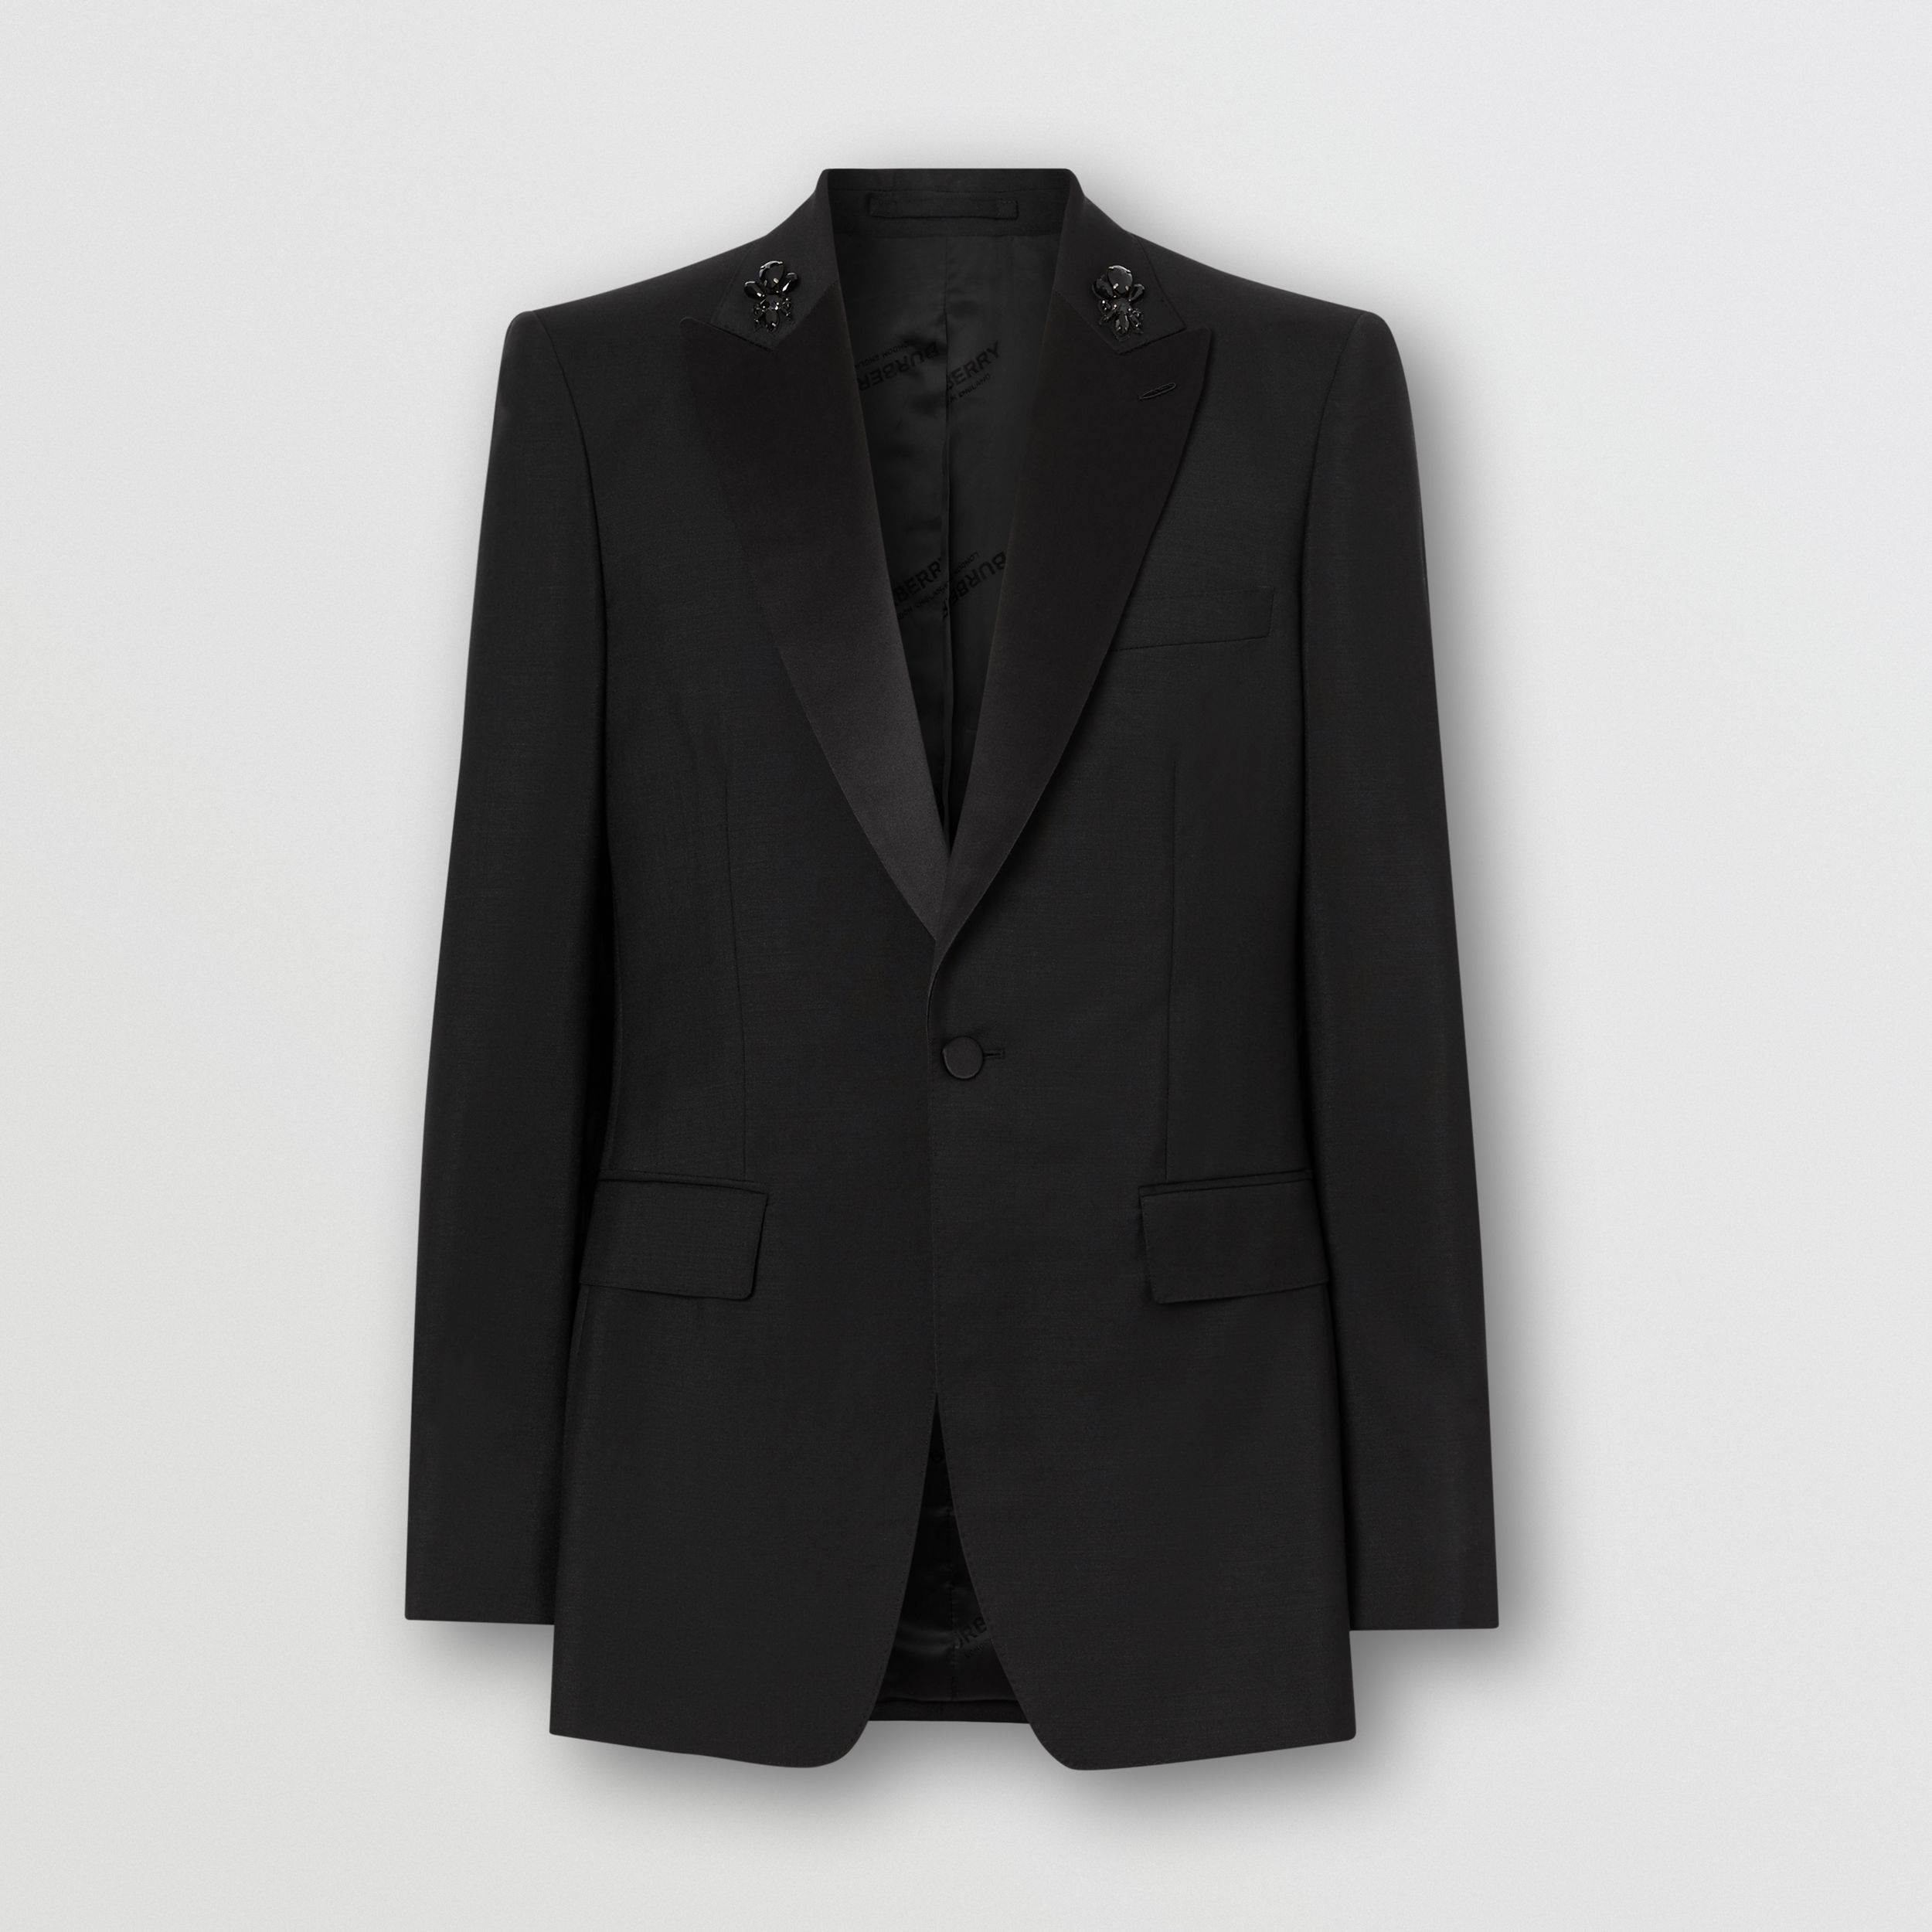 English Fit Embellished Mohair Wool Tuxedo Jacket in Black - Men | Burberry - 4